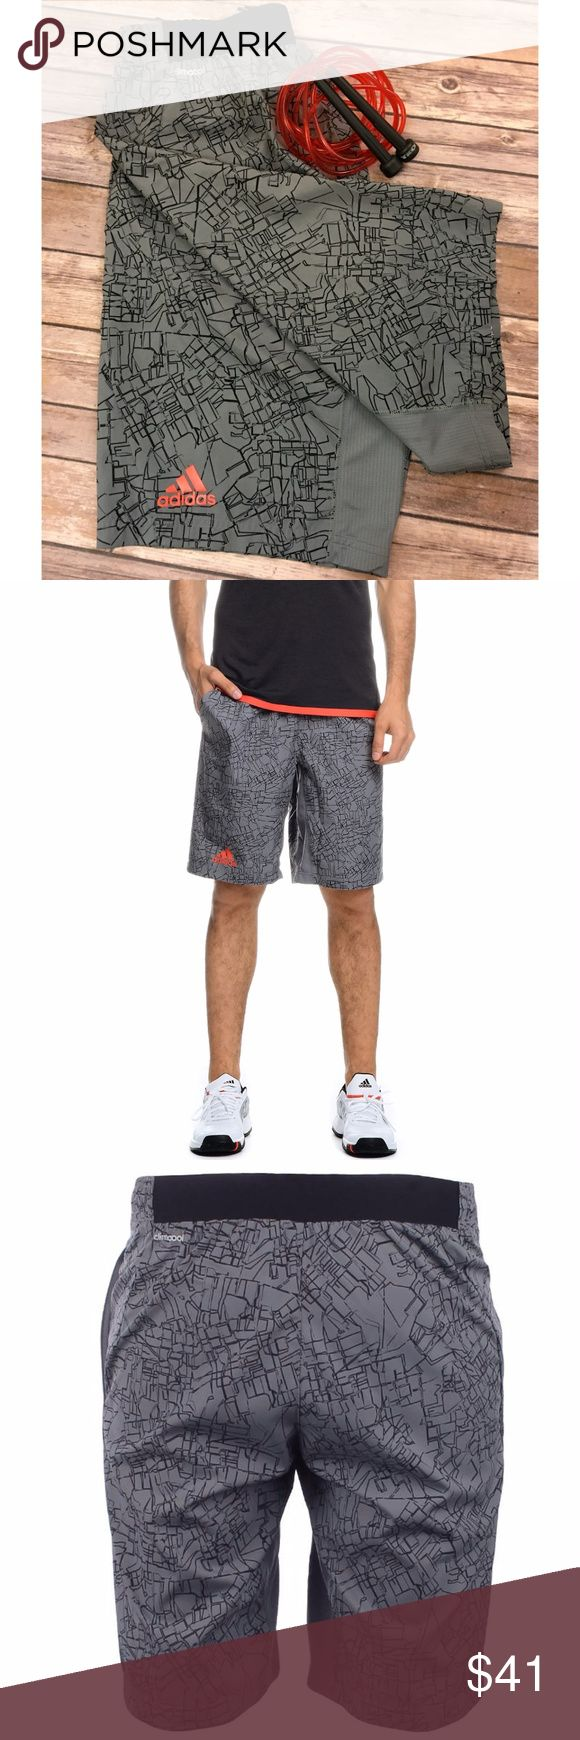 Adidas Response Mens Bermuda Shorts S15716 NWOT* The Bermuda adidas Performance Response gray/black/red features the brand's stylish, localized logo, plus two pockets, apparent cutouts and elastic waistband. Made of 100% polyester, with UV protection and Climacool technology, it offers soft touch and controls perspiration.   Size: Mens Medium Measurements:  Waist-29in Inseam-10in Front Rise- 10.5in Adidas Shorts Athletic